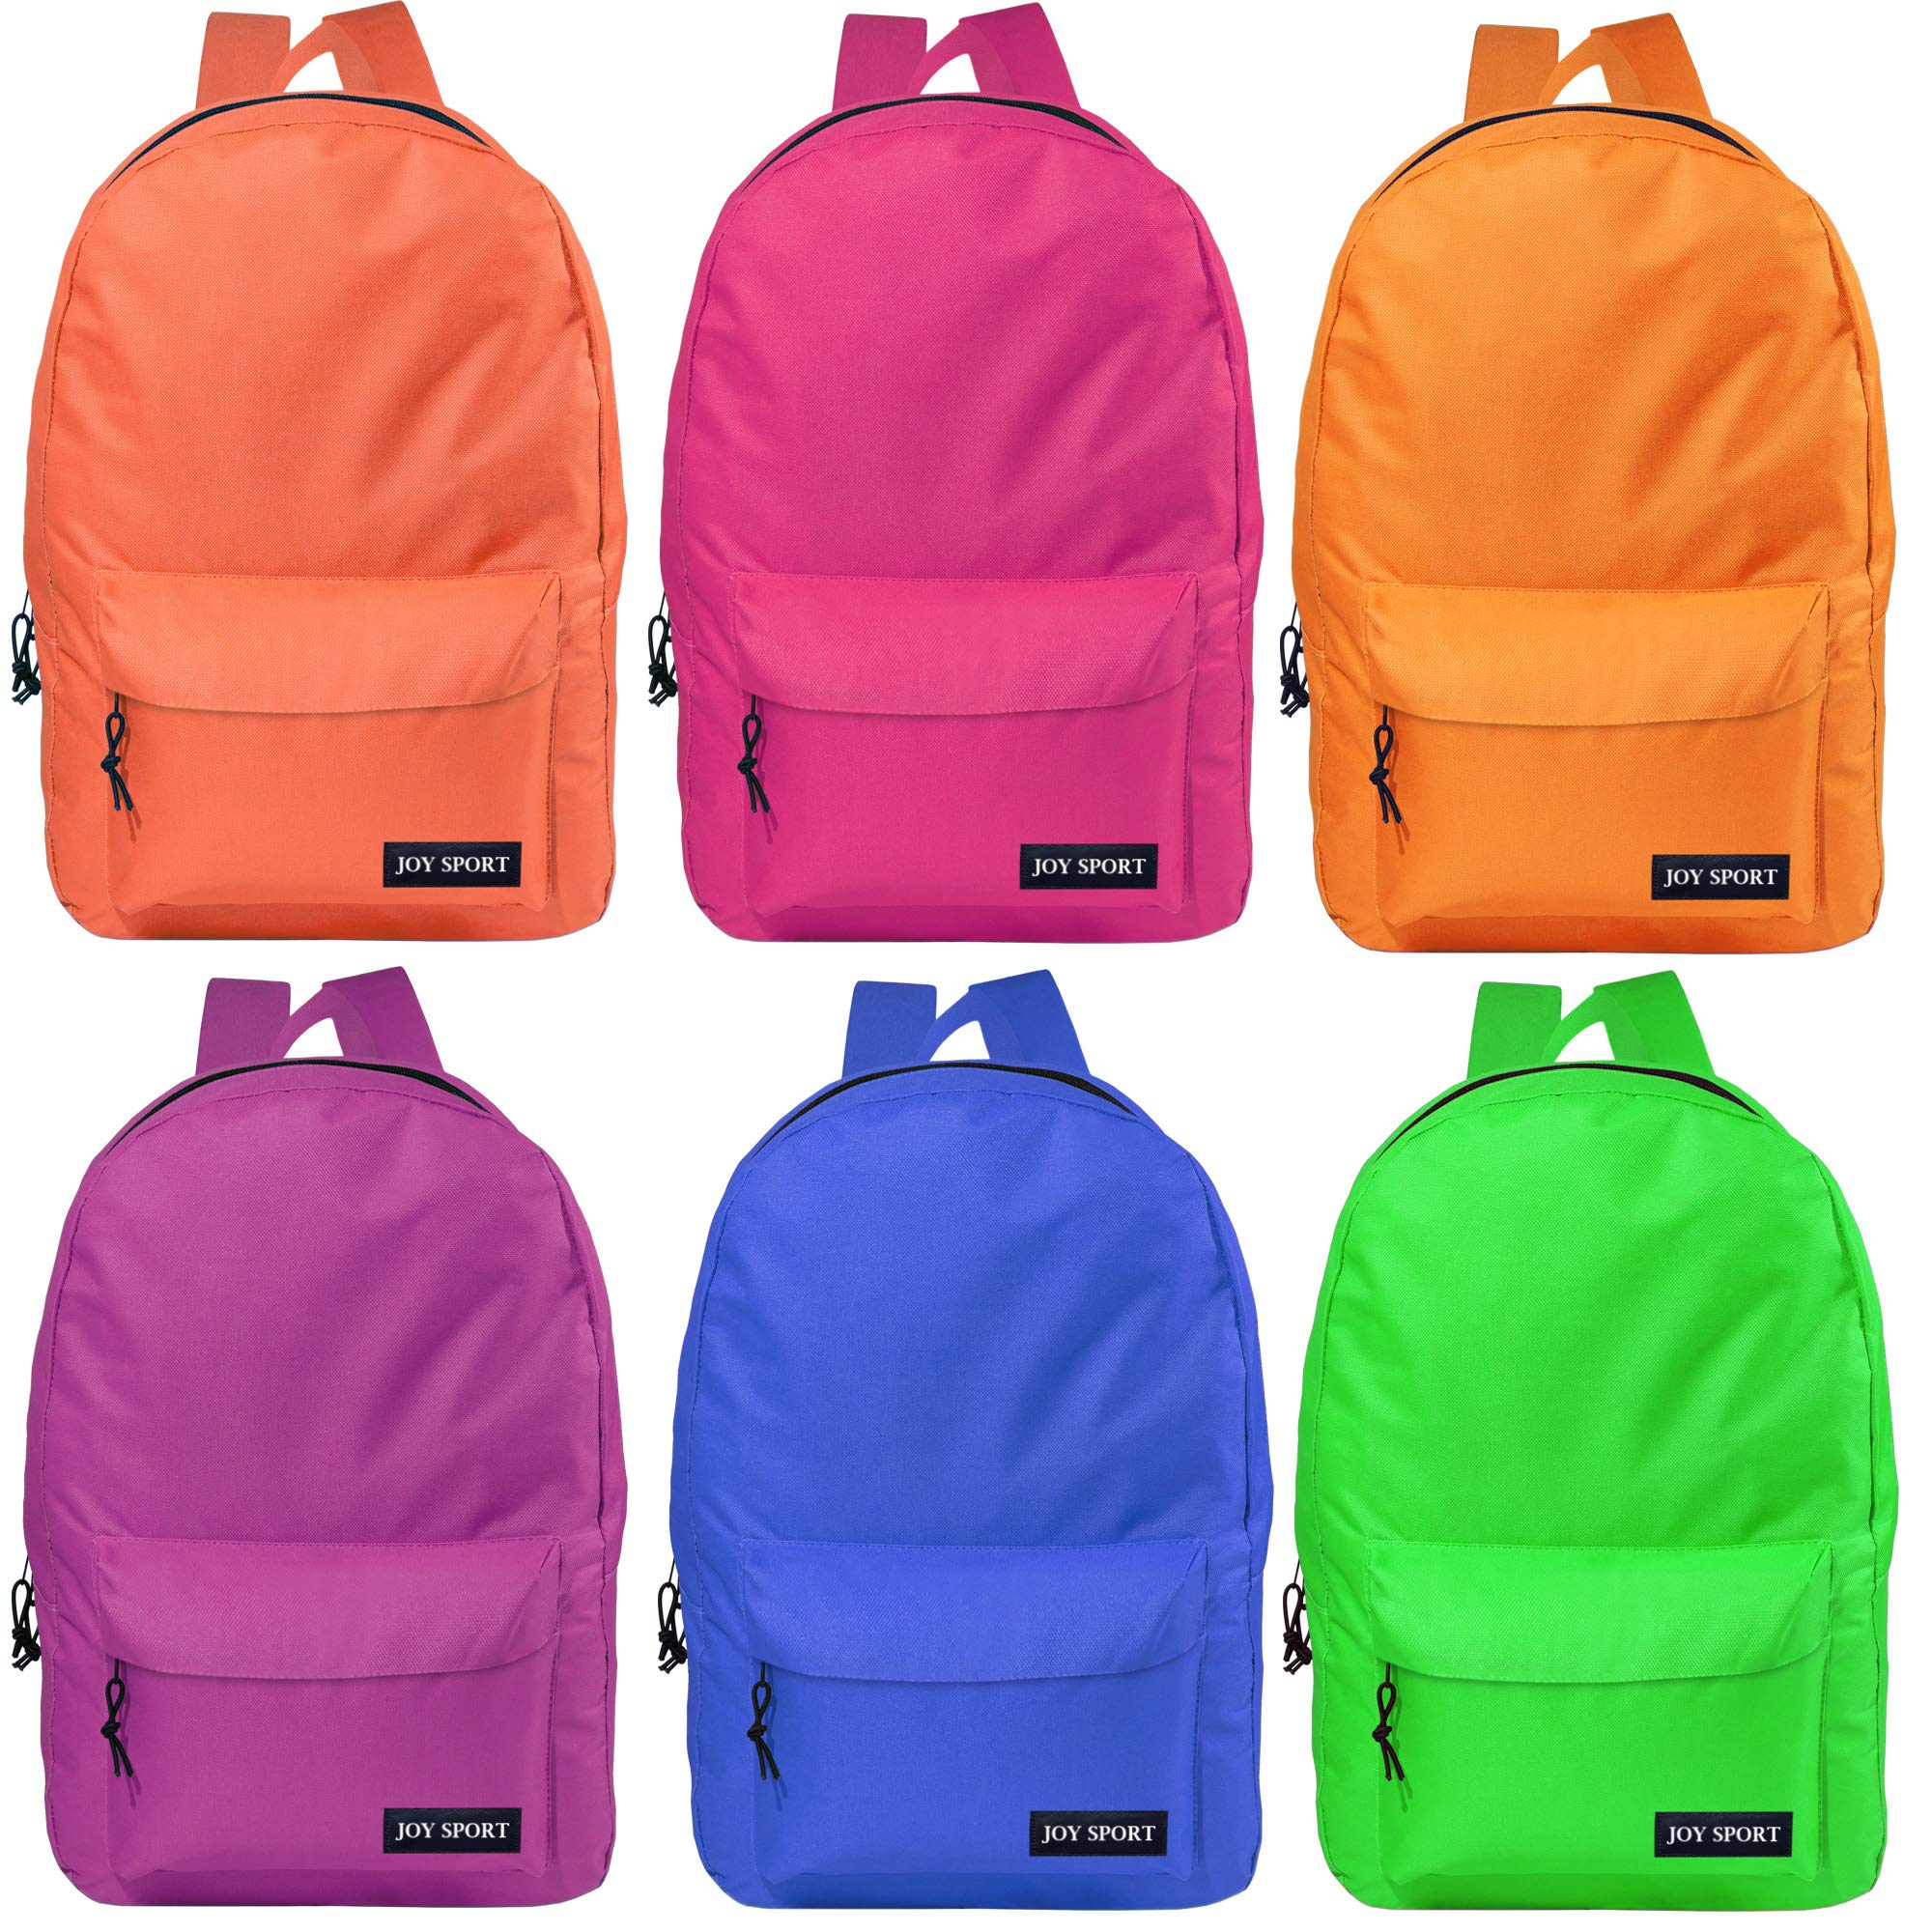 Wholesale Case of 48 Bookbags - 17-inch Classic Bulk Backpacks in 6 Assorted Colors by Joy Sport